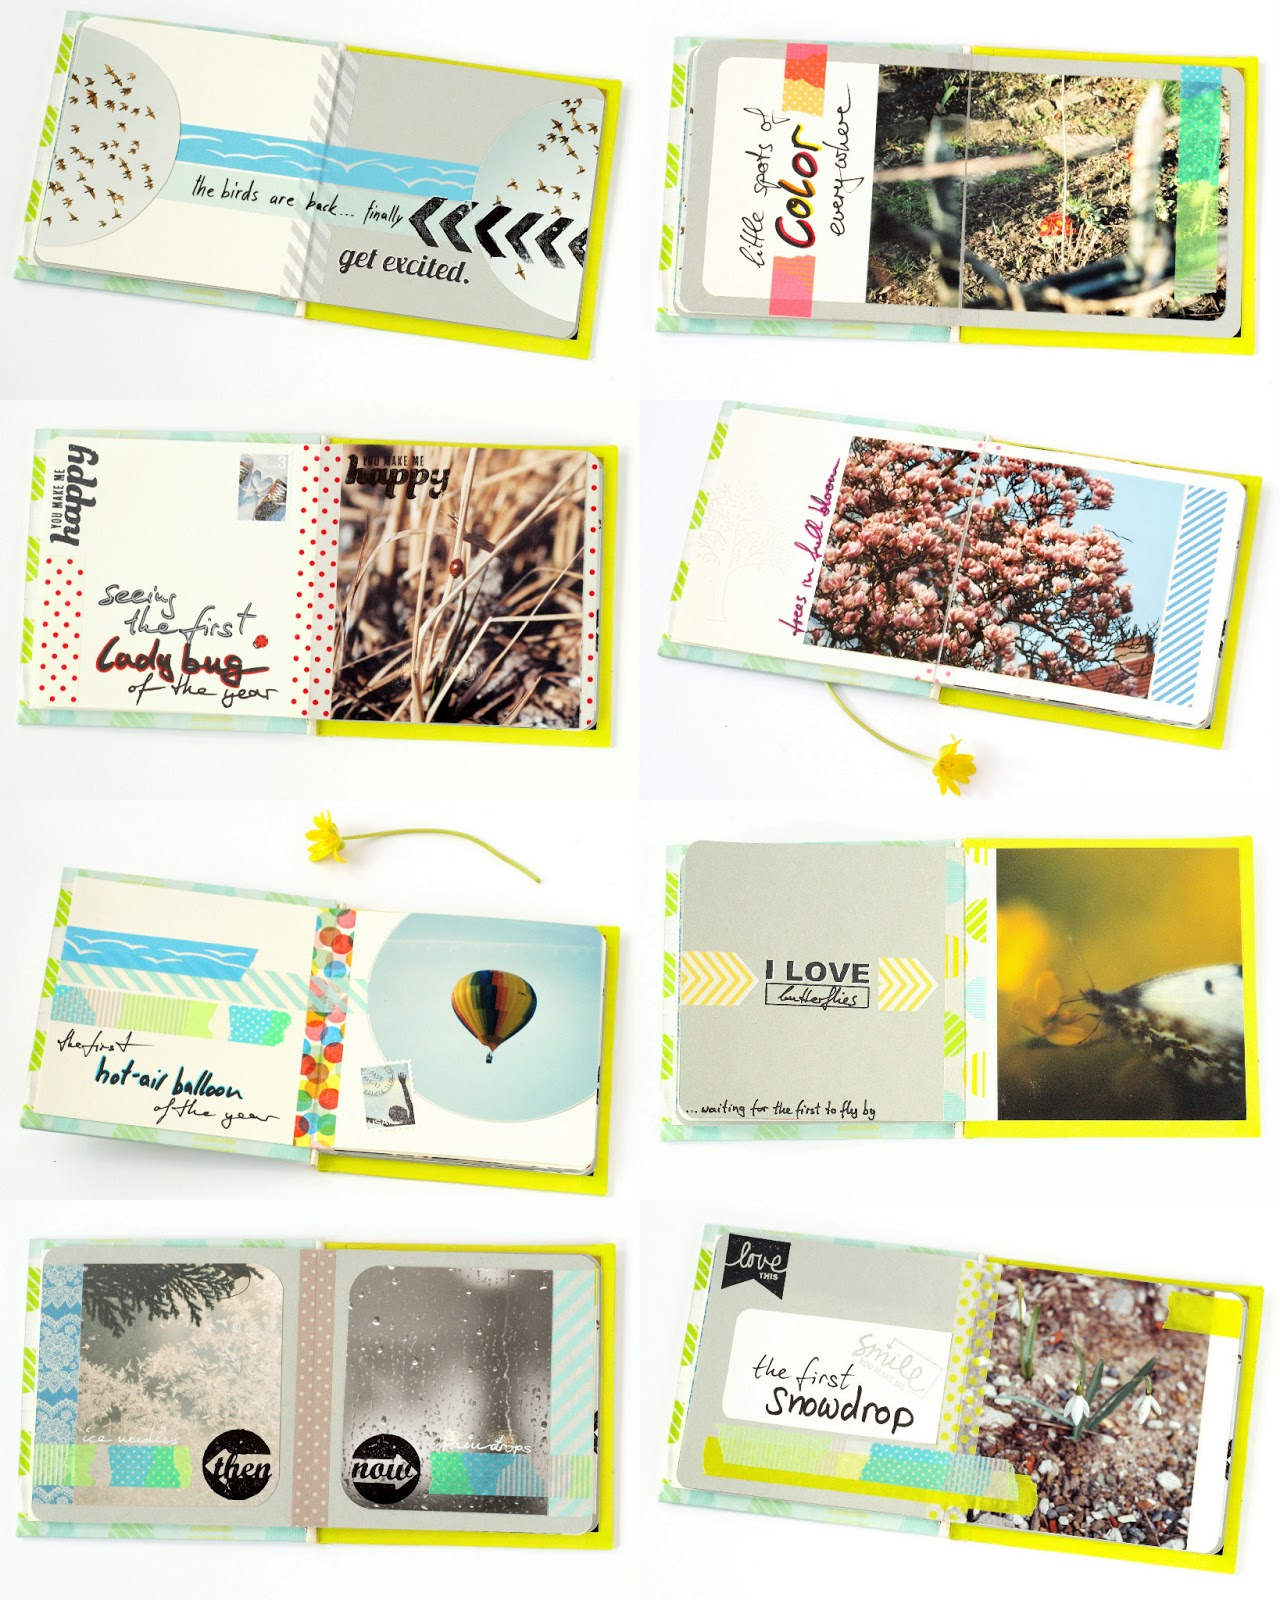 spring fling: minialbum 'i love spring' overview by momentstolivefor